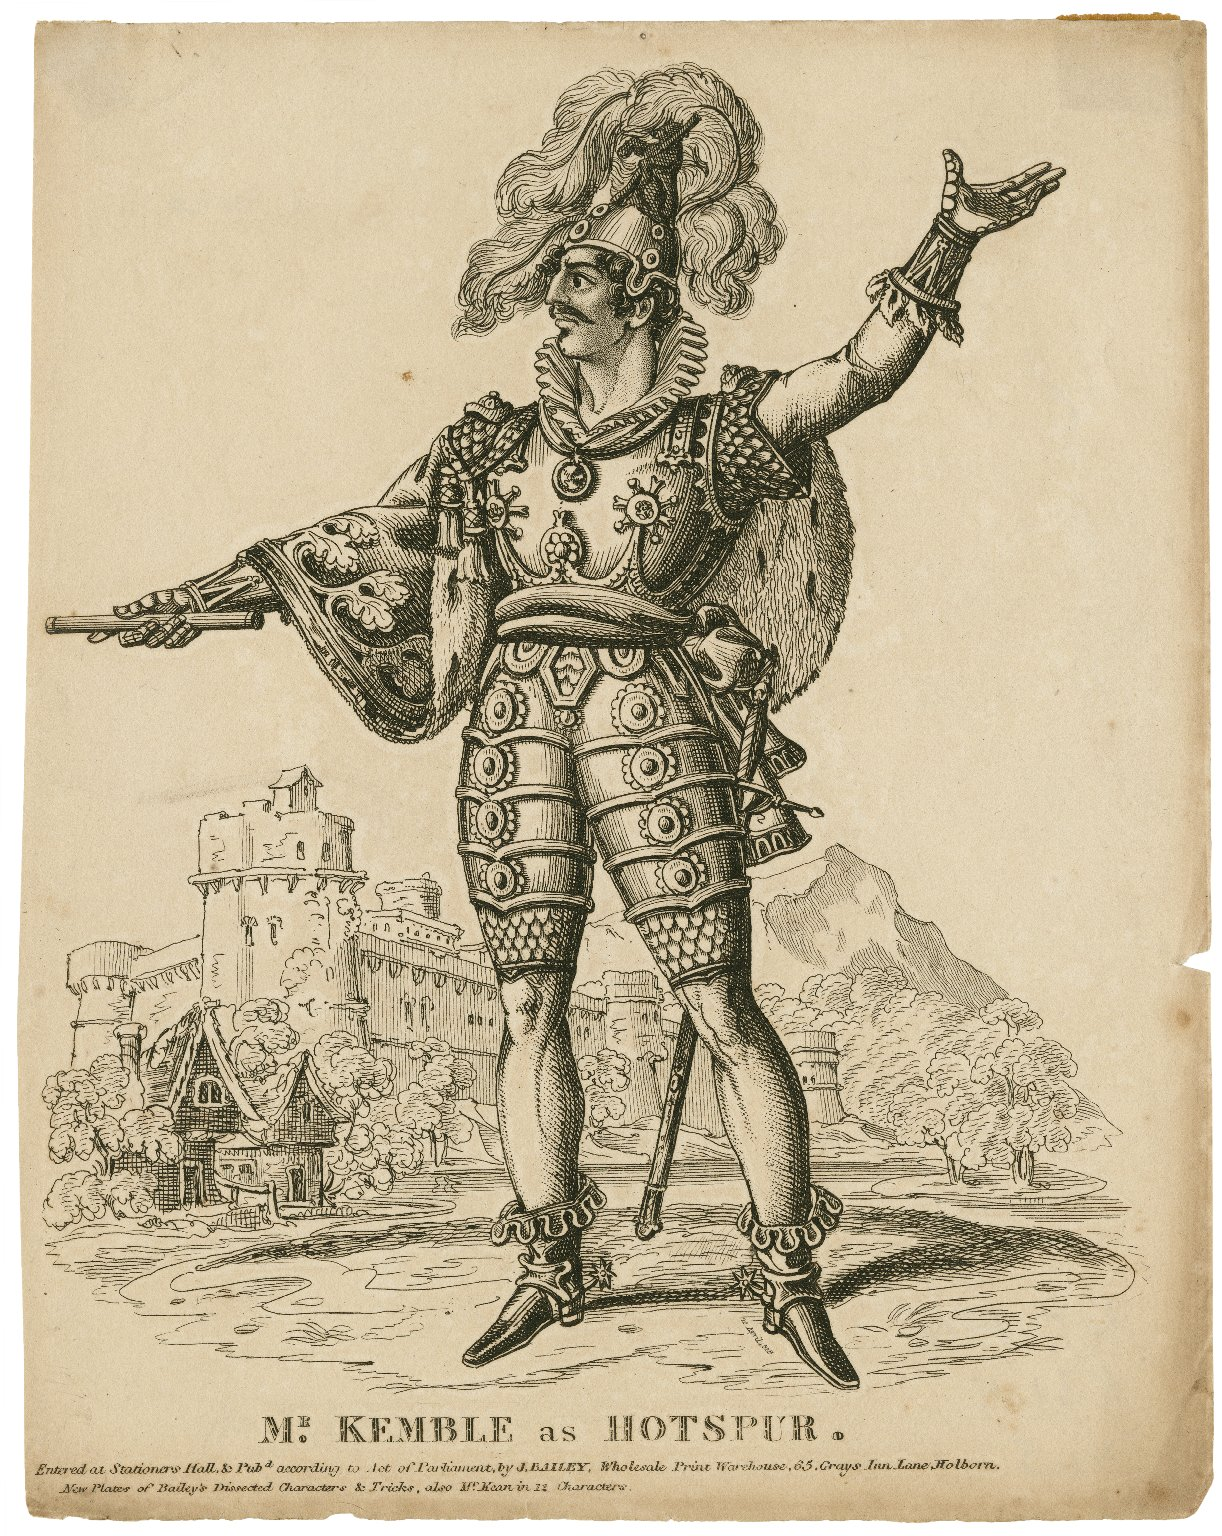 Mr. J. Kemble as Hotspur [in Shakespeare's King Henry IV, pt. 1] [graphic].